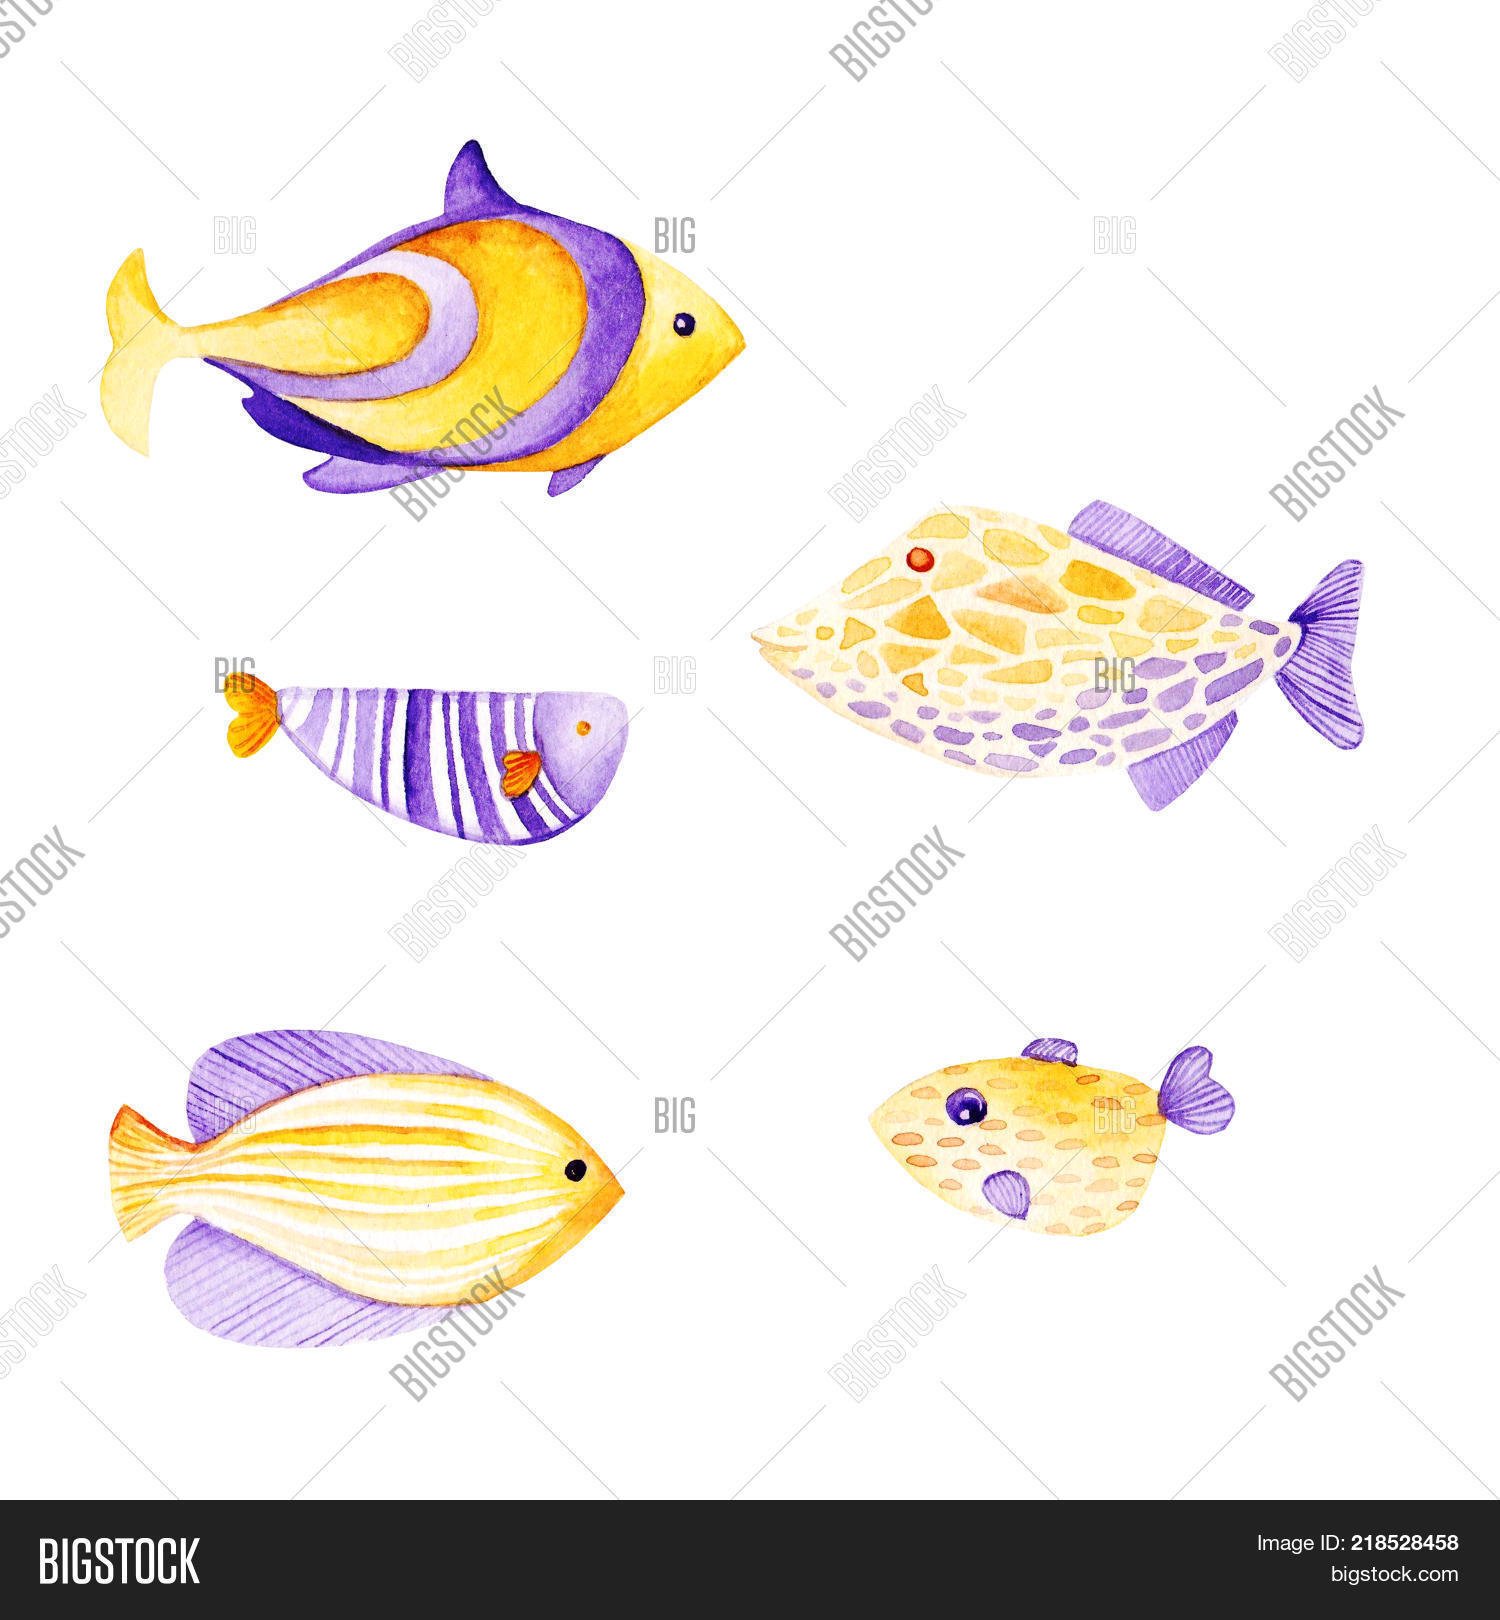 Watercolor Fish Frame Image & Photo (Free Trial) | Bigstock